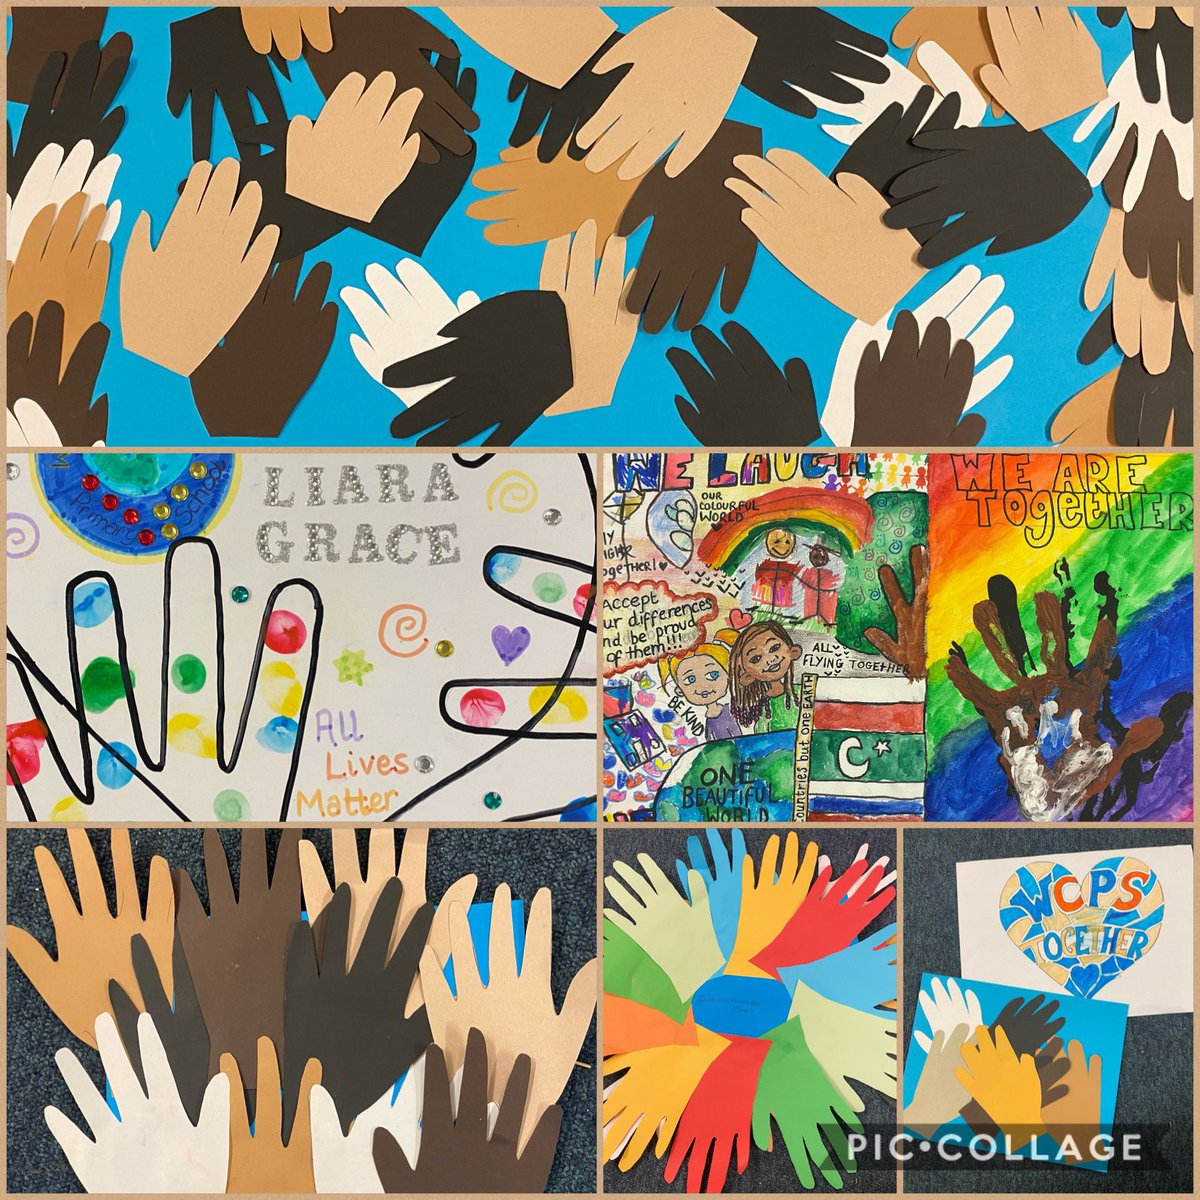 We are so proud of the amazing artwork which the children from FS2 created last week, as part of the online art lesson.  Well done everyone!🤎 #AntiBullyingWeek  #BlackLivesMatter